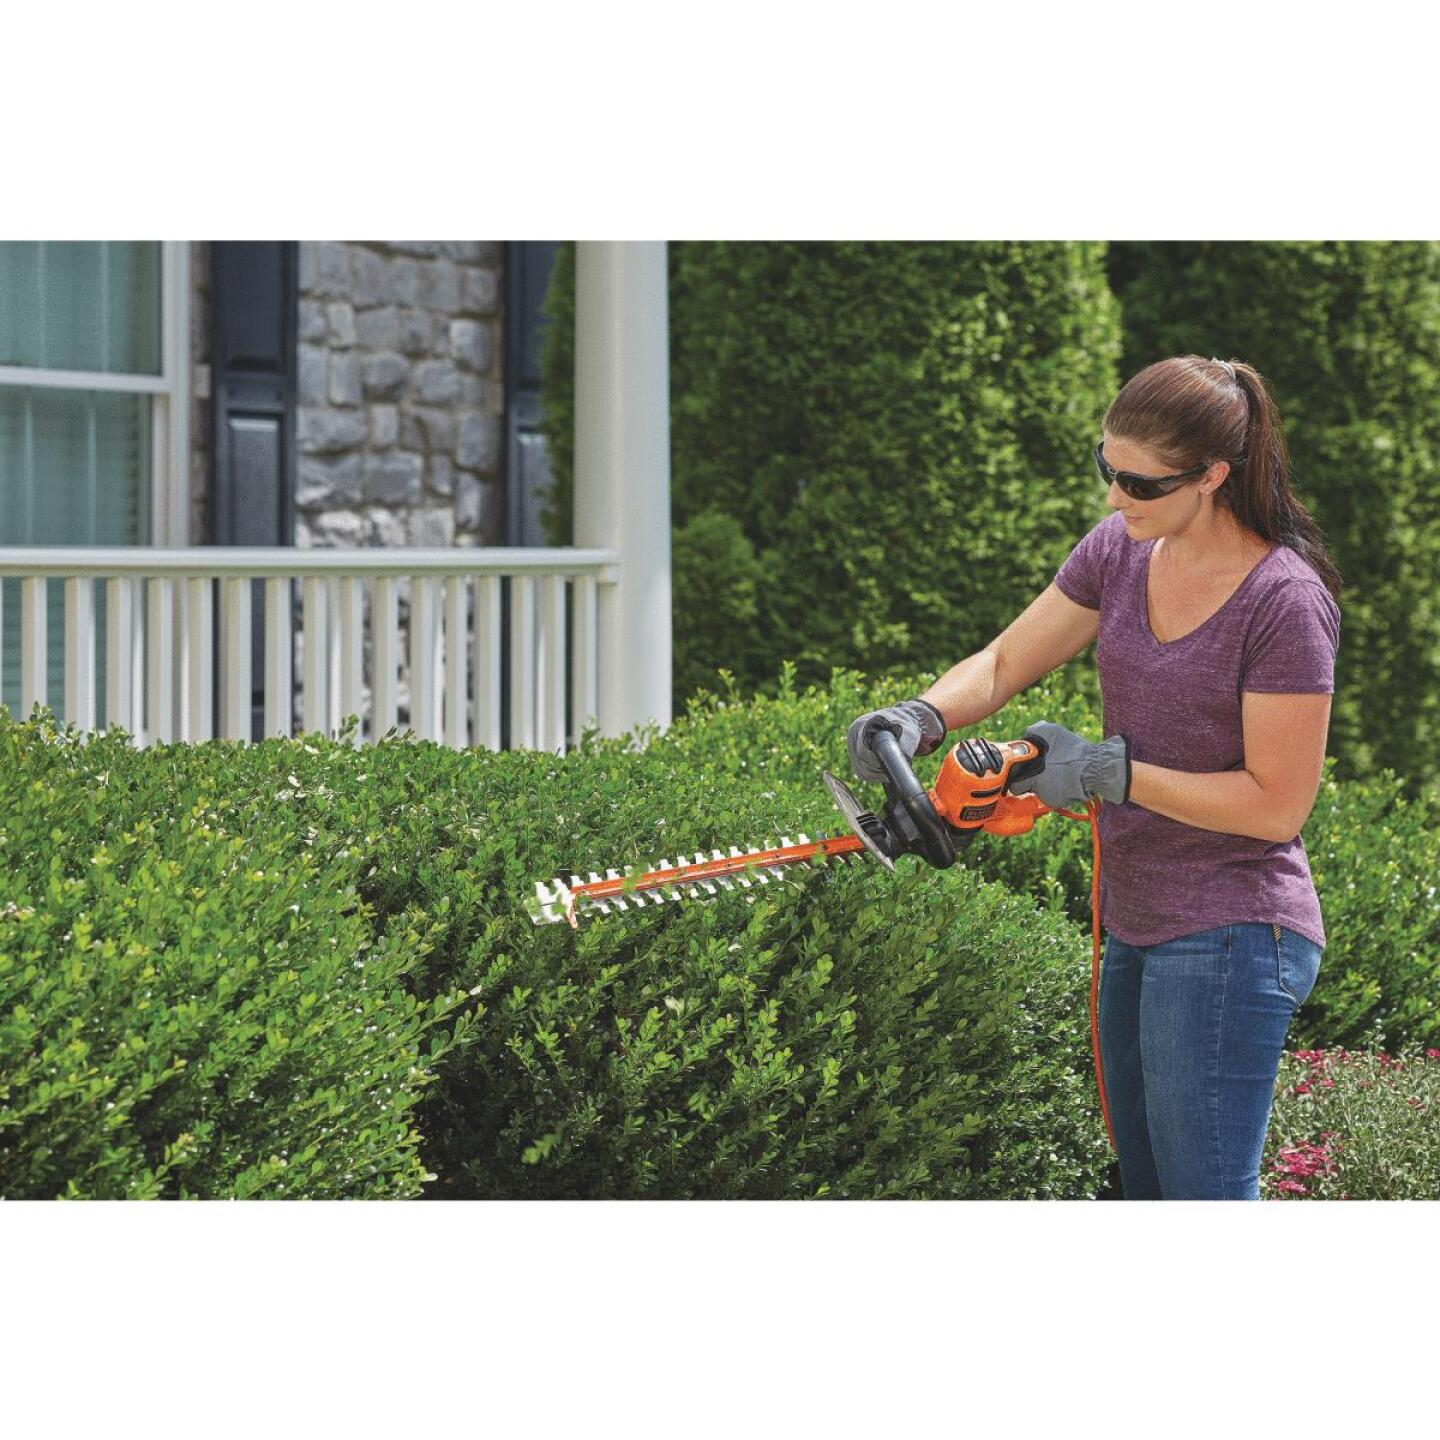 Black & Decker Sawblade 20 In. 3A Corded Electric Hedge Trimmer Image 2